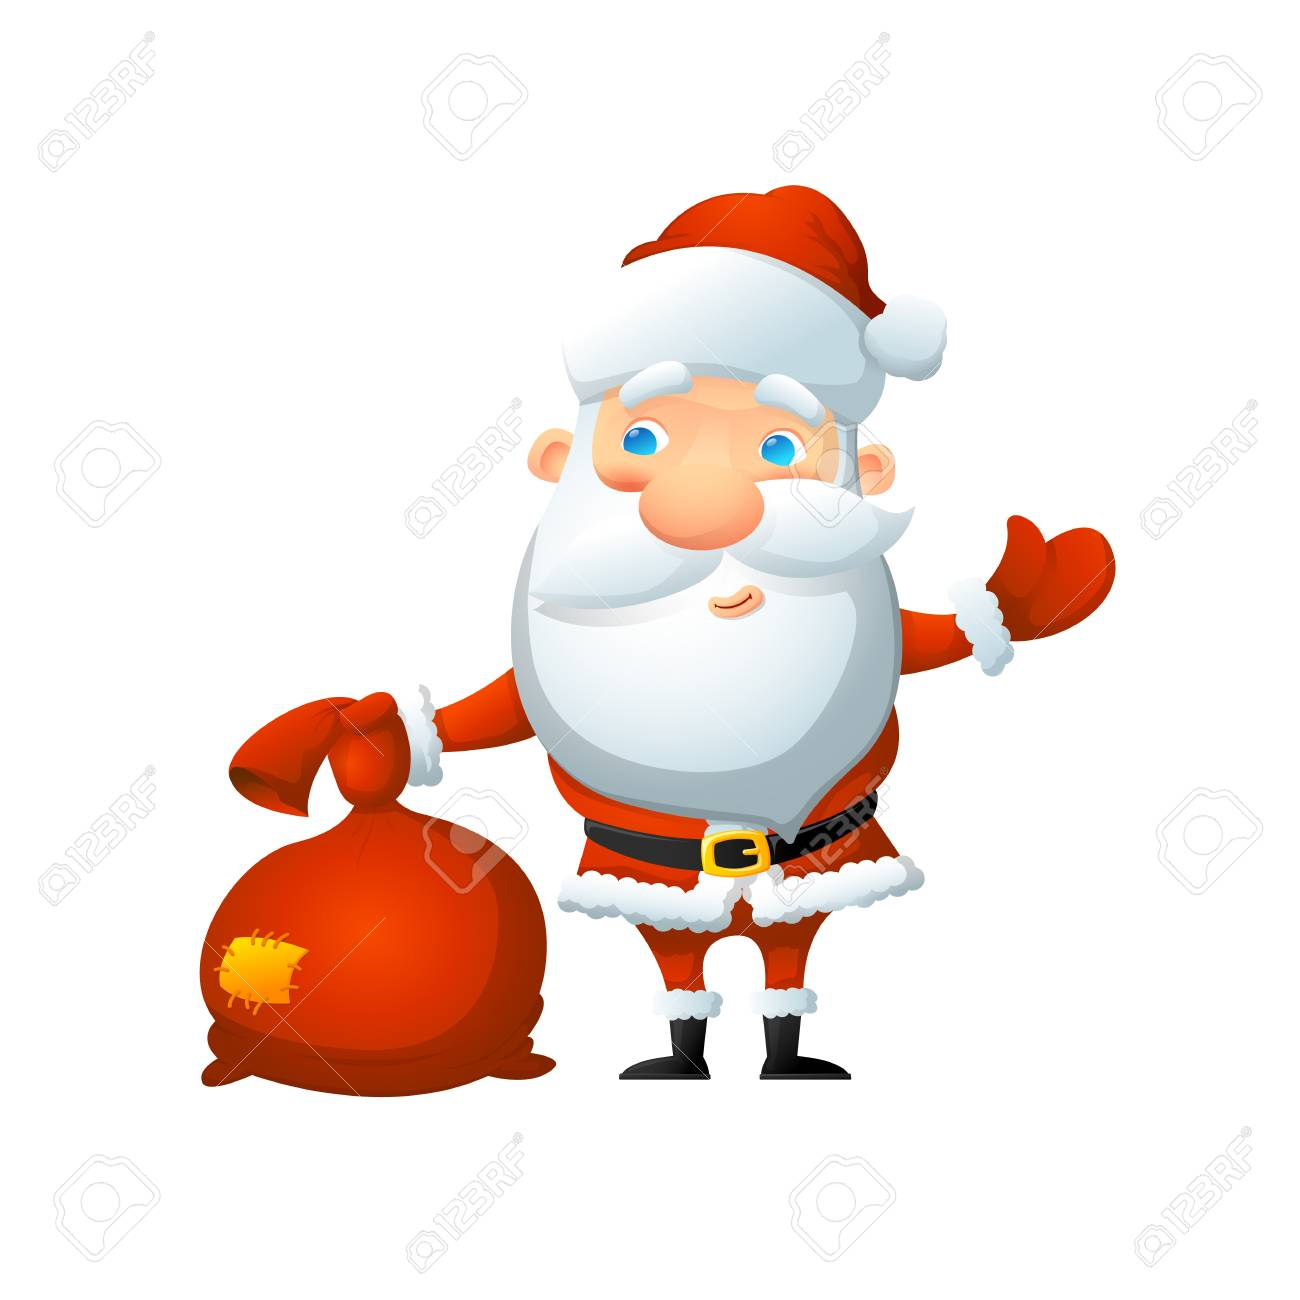 Cartoon cute Santa Claus, with a bag of gifts in his hand. On a white background, cartoon, vector illustration. - 112717773